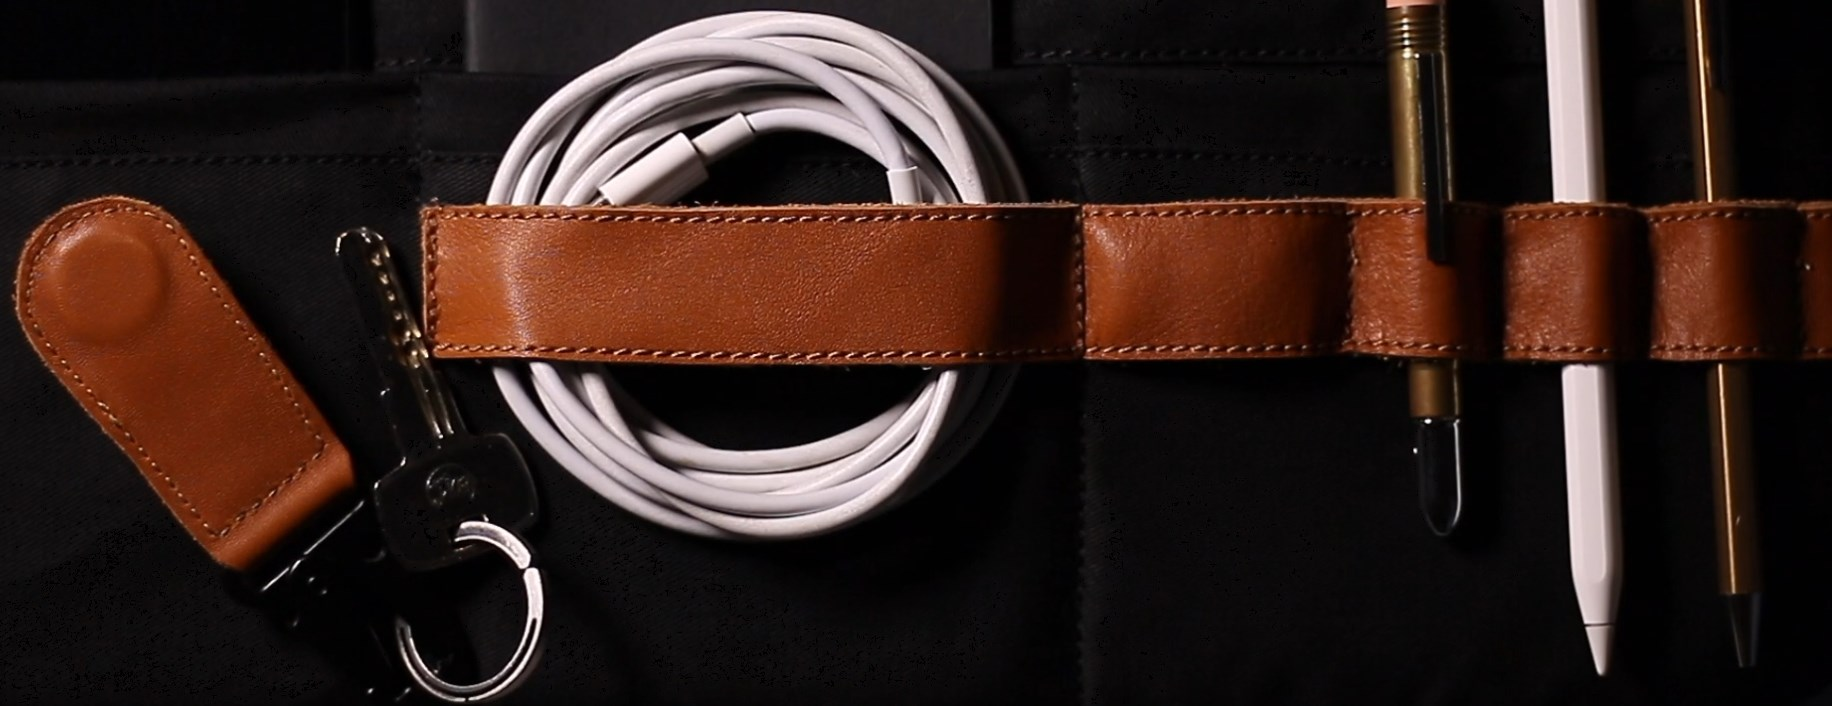 Review: Harber London Leather Messenger Bag for iPad